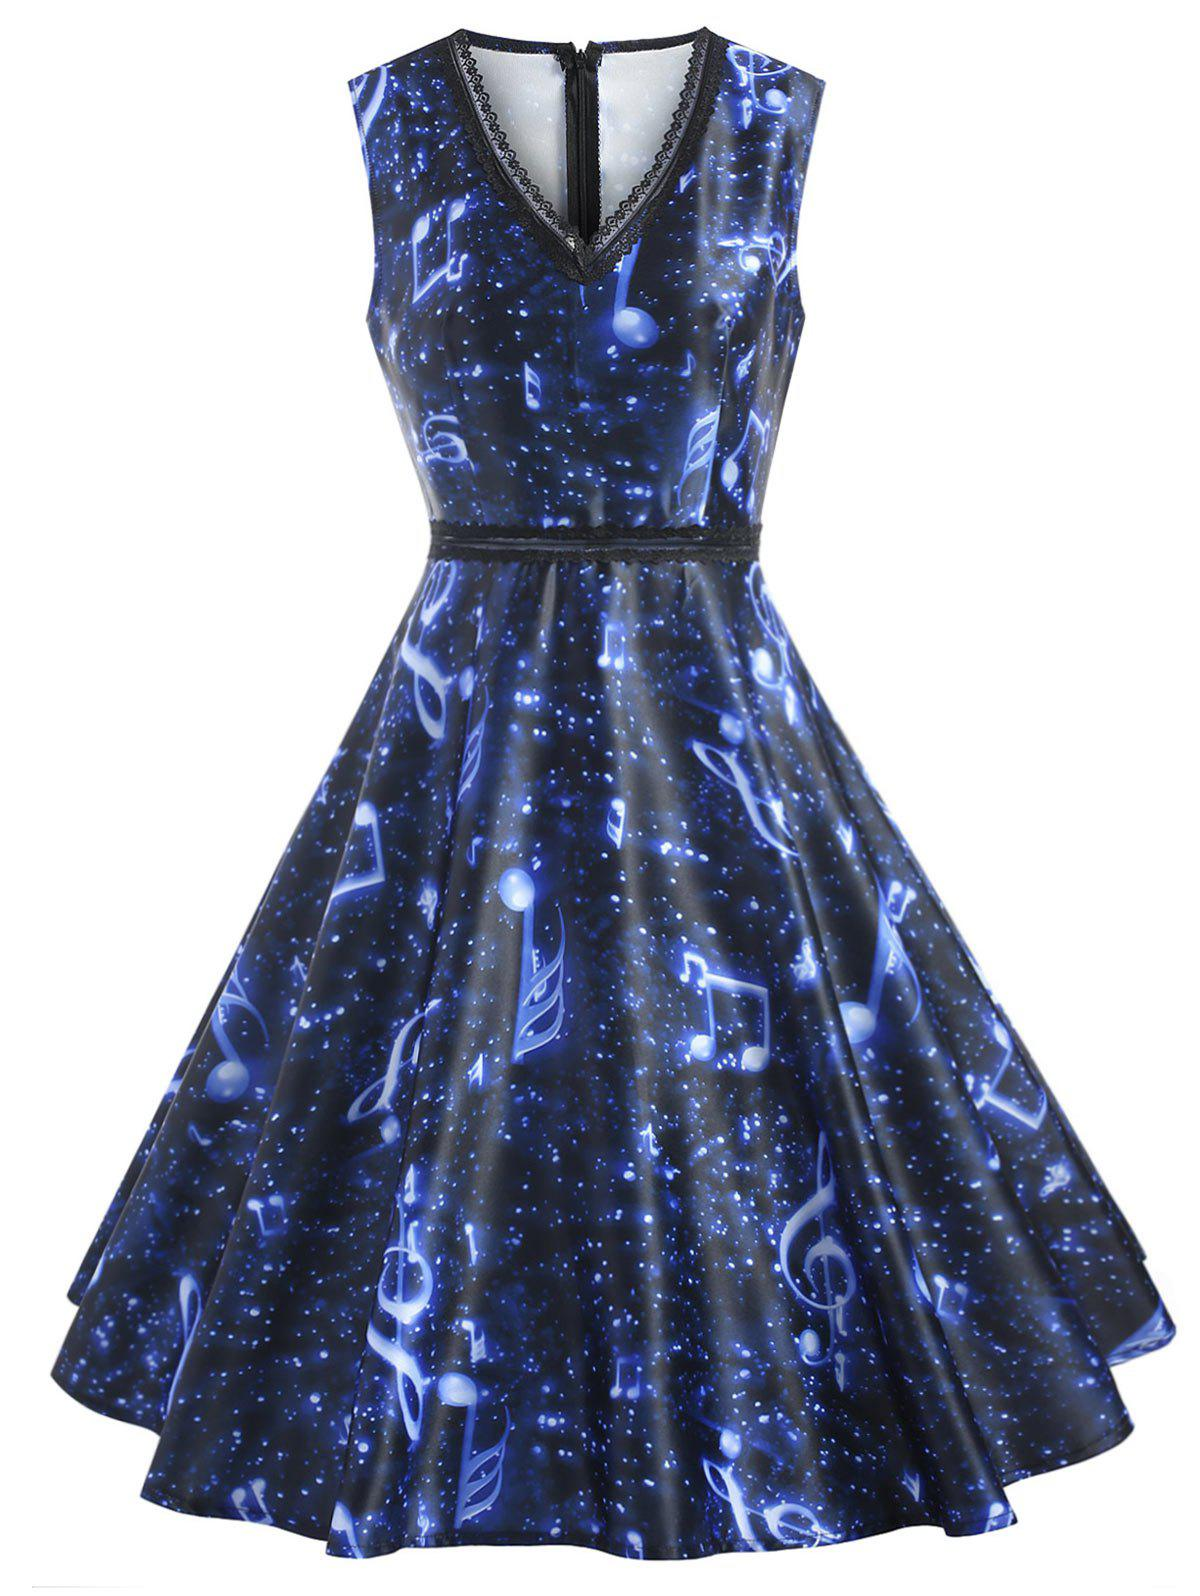 Music Note Print Lace Insert Dress - BLUE 2XL